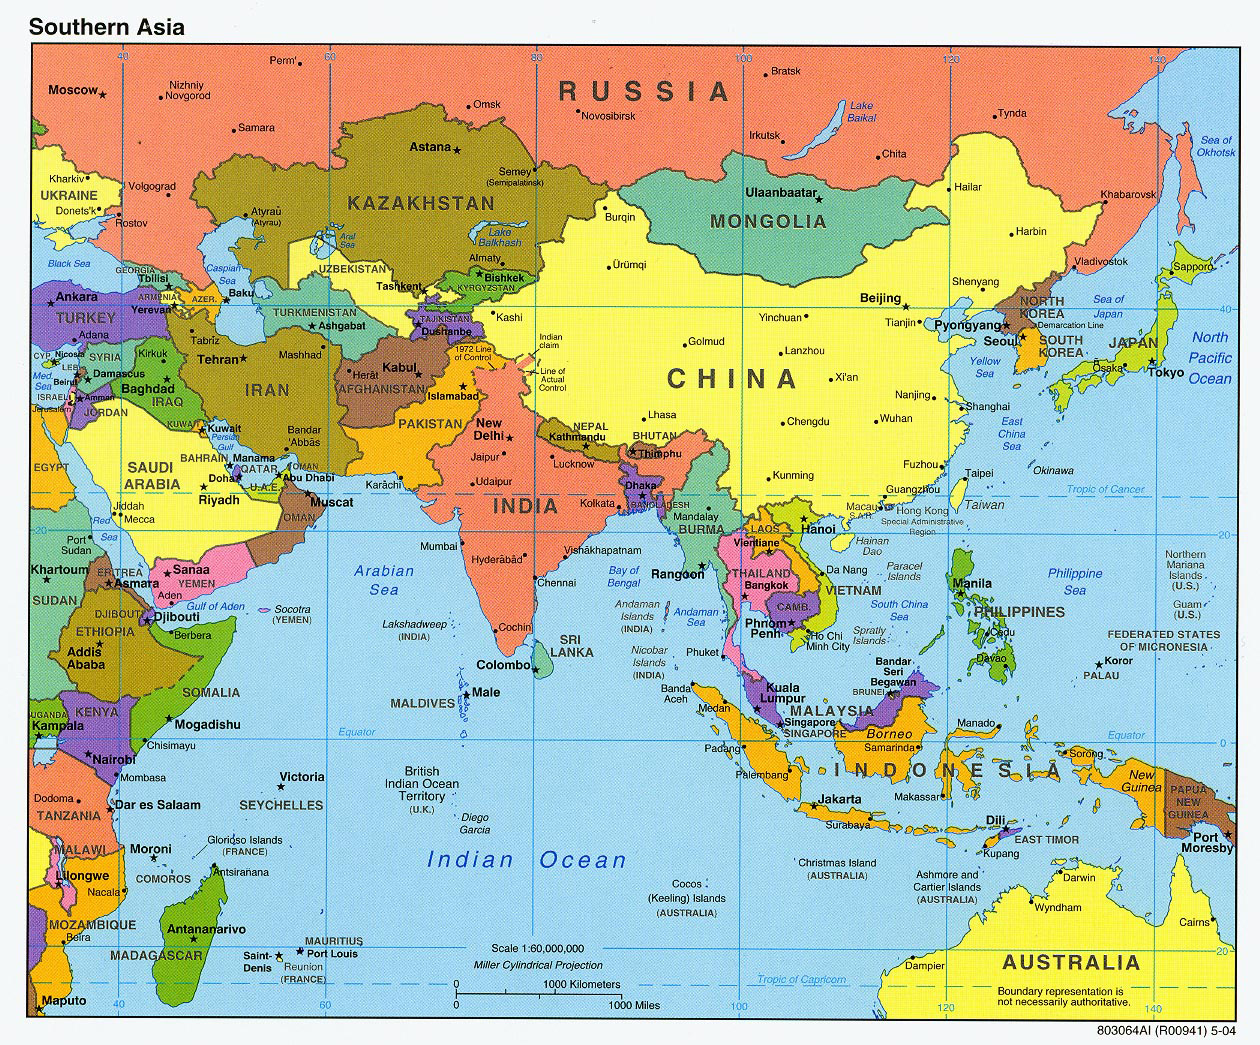 Map Of Asia With Countries And Capitals Detailed political map of Southern Asia with capitals and major